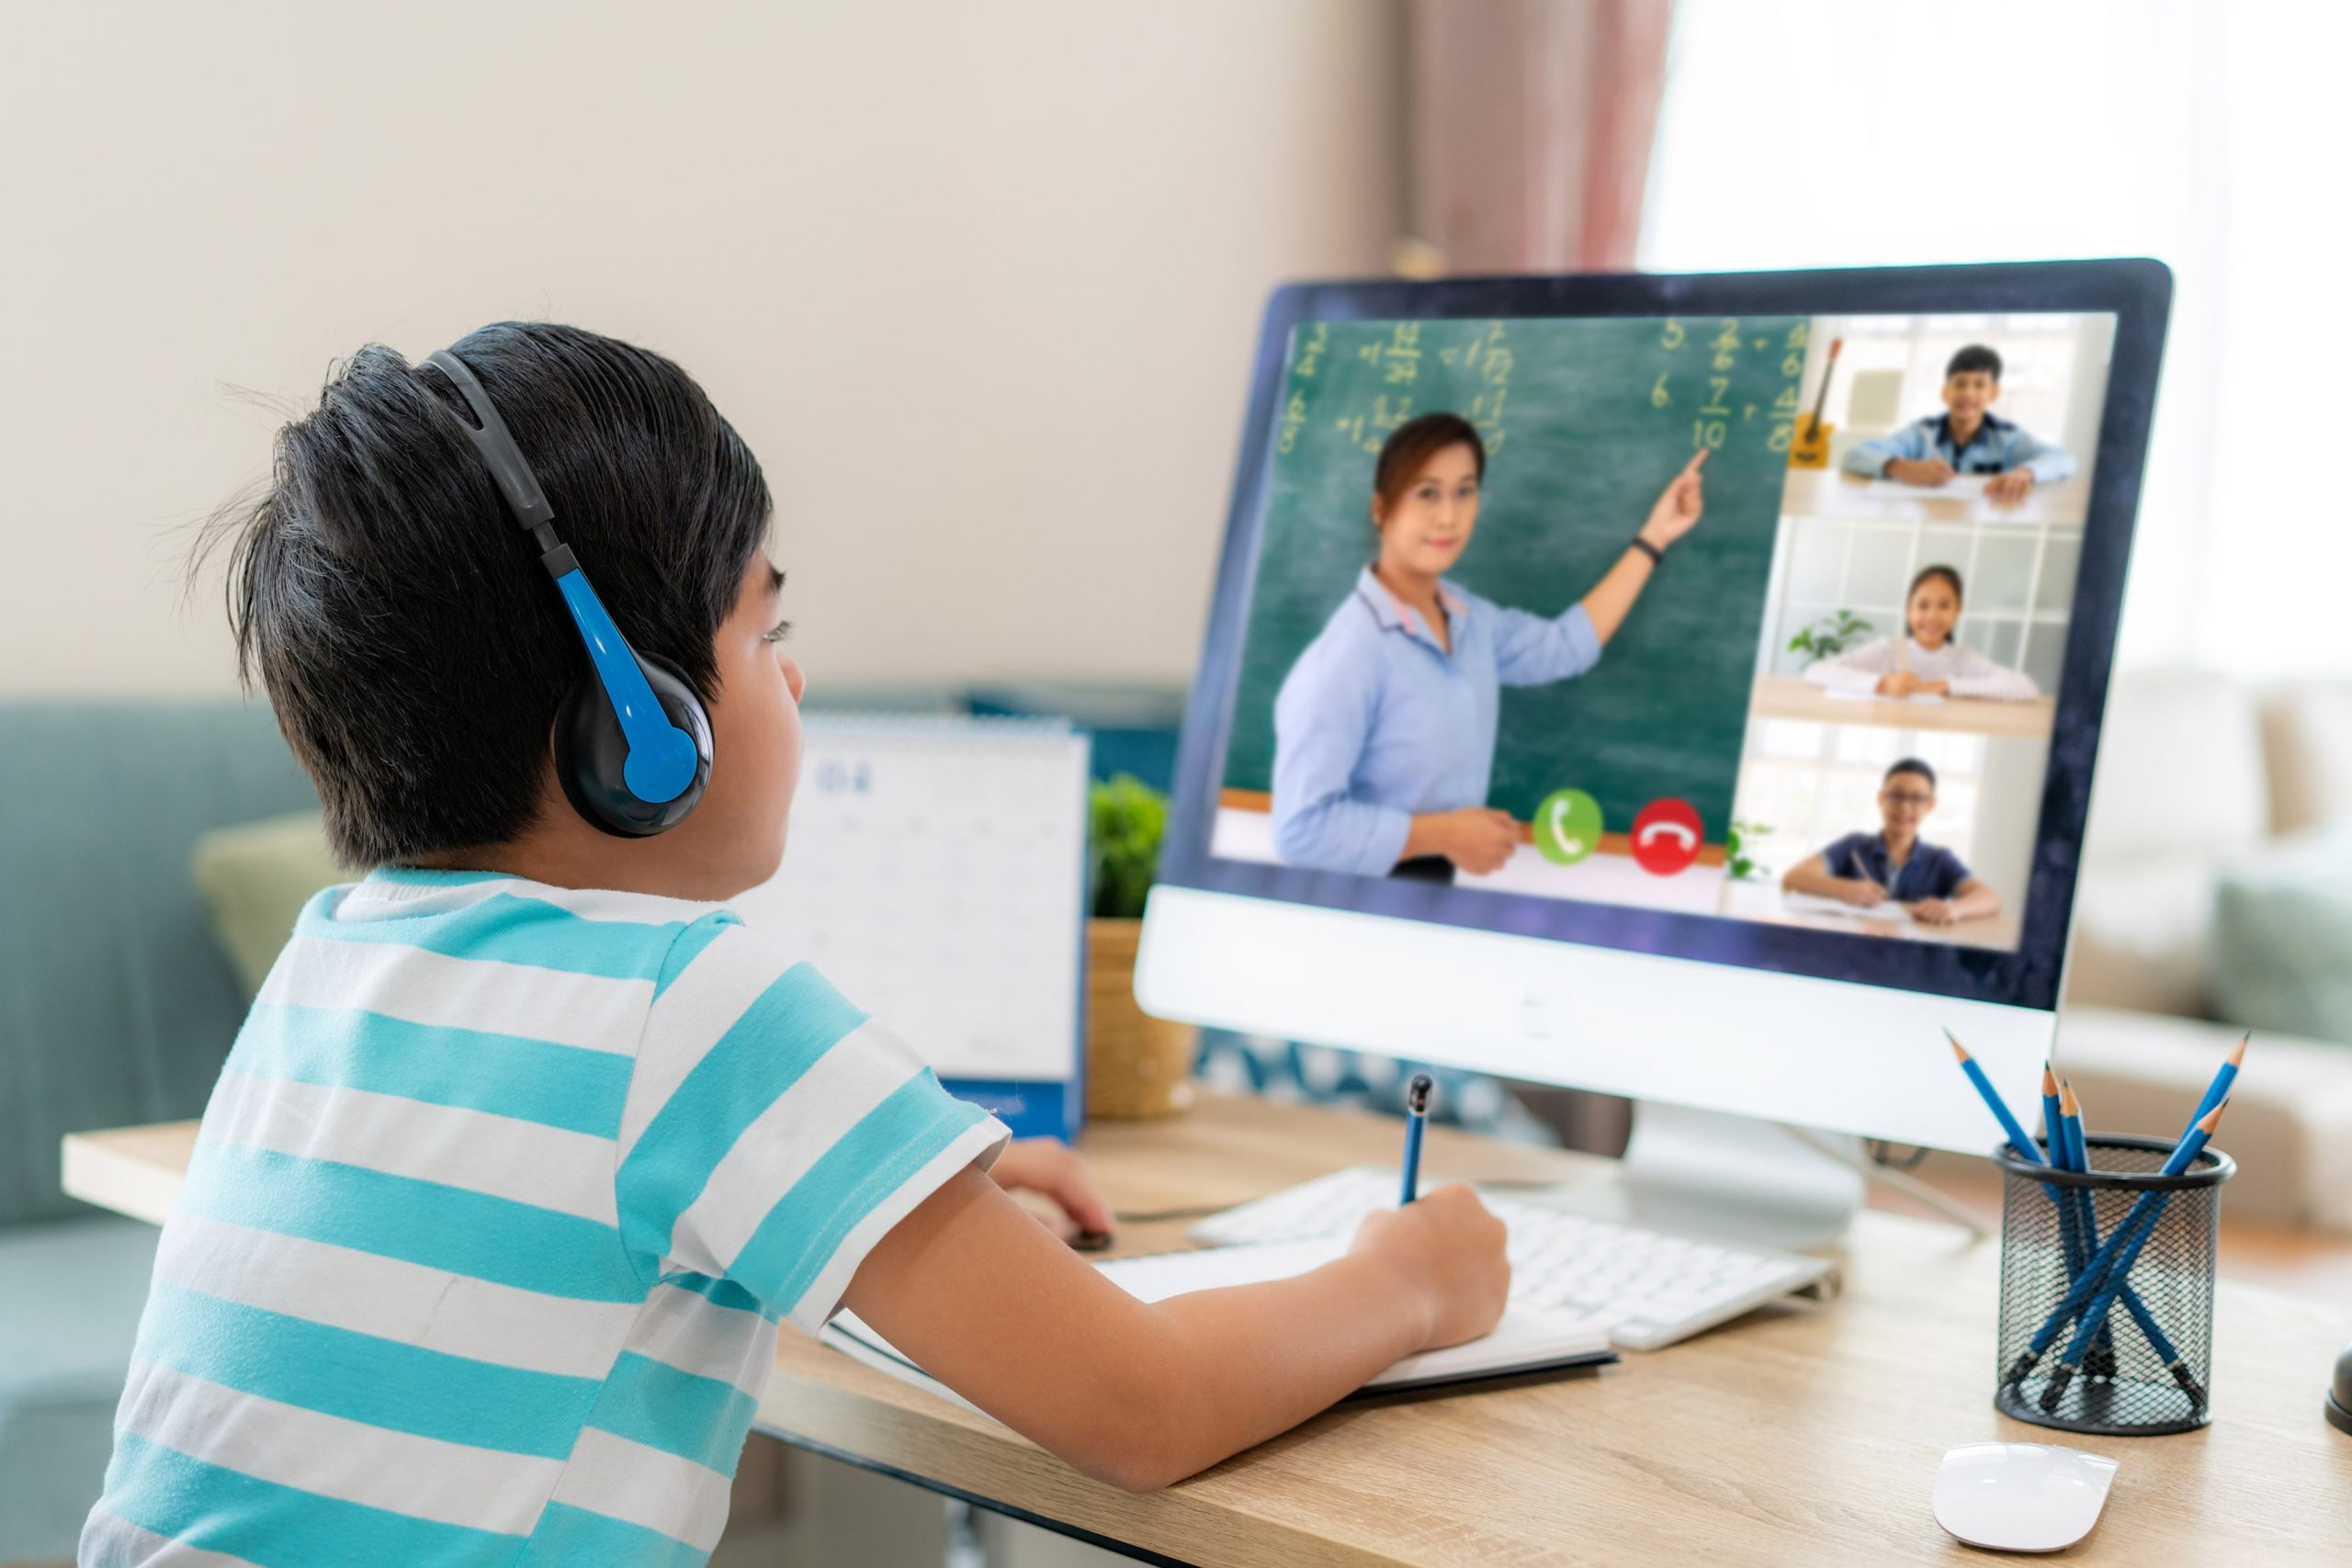 Elementary aged student attending school from home using a computer